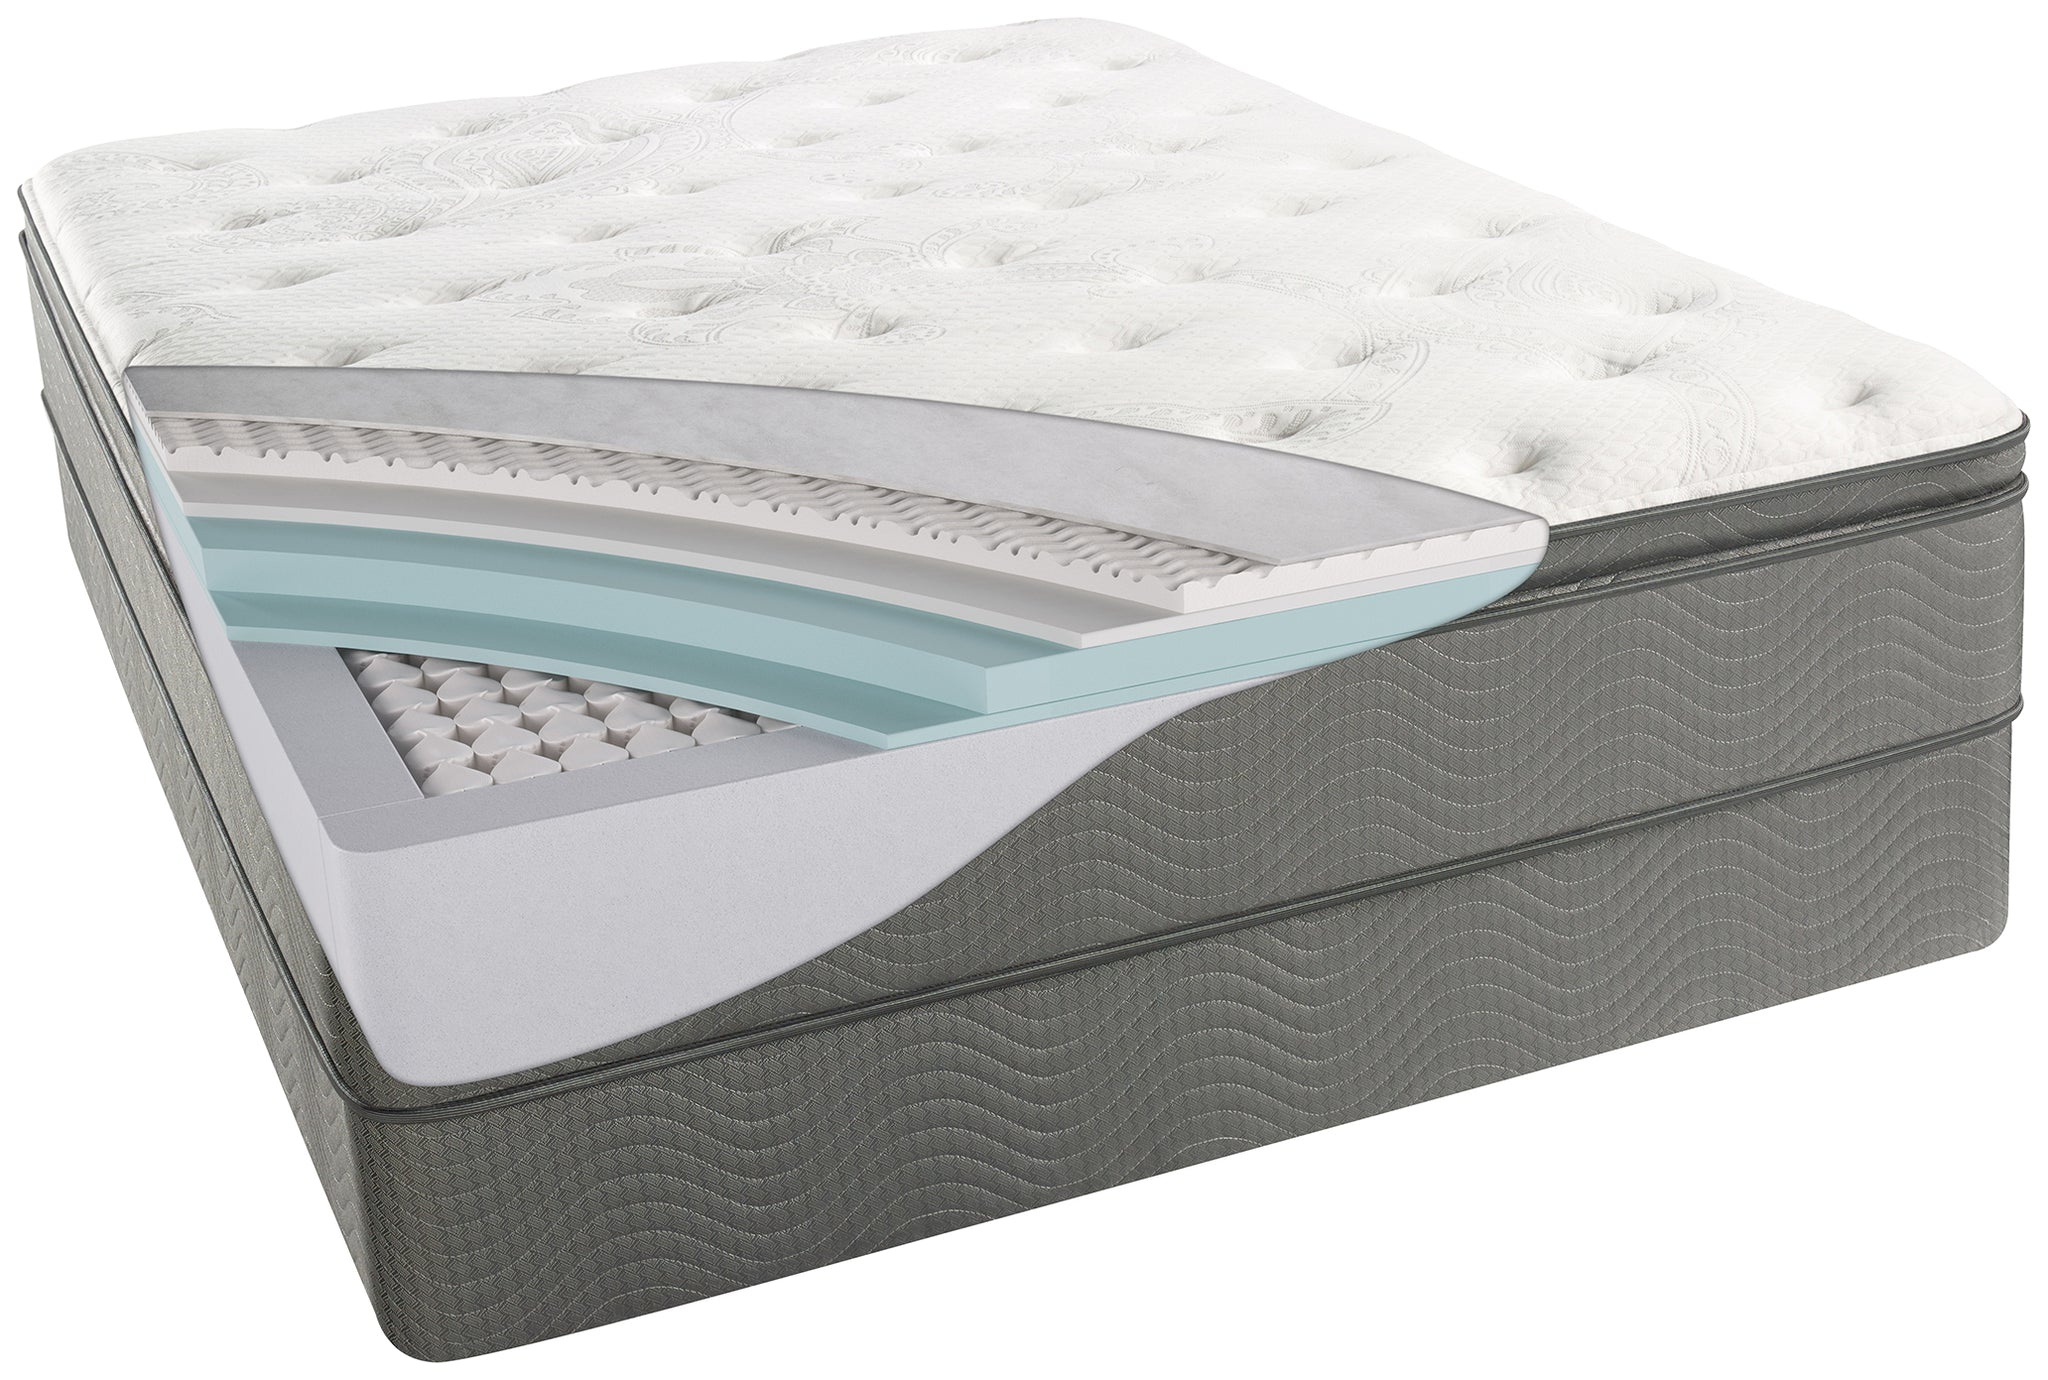 relyon for mattresses the from home pillow worldstores img ruby c everything day topper htm delivery next mattress top